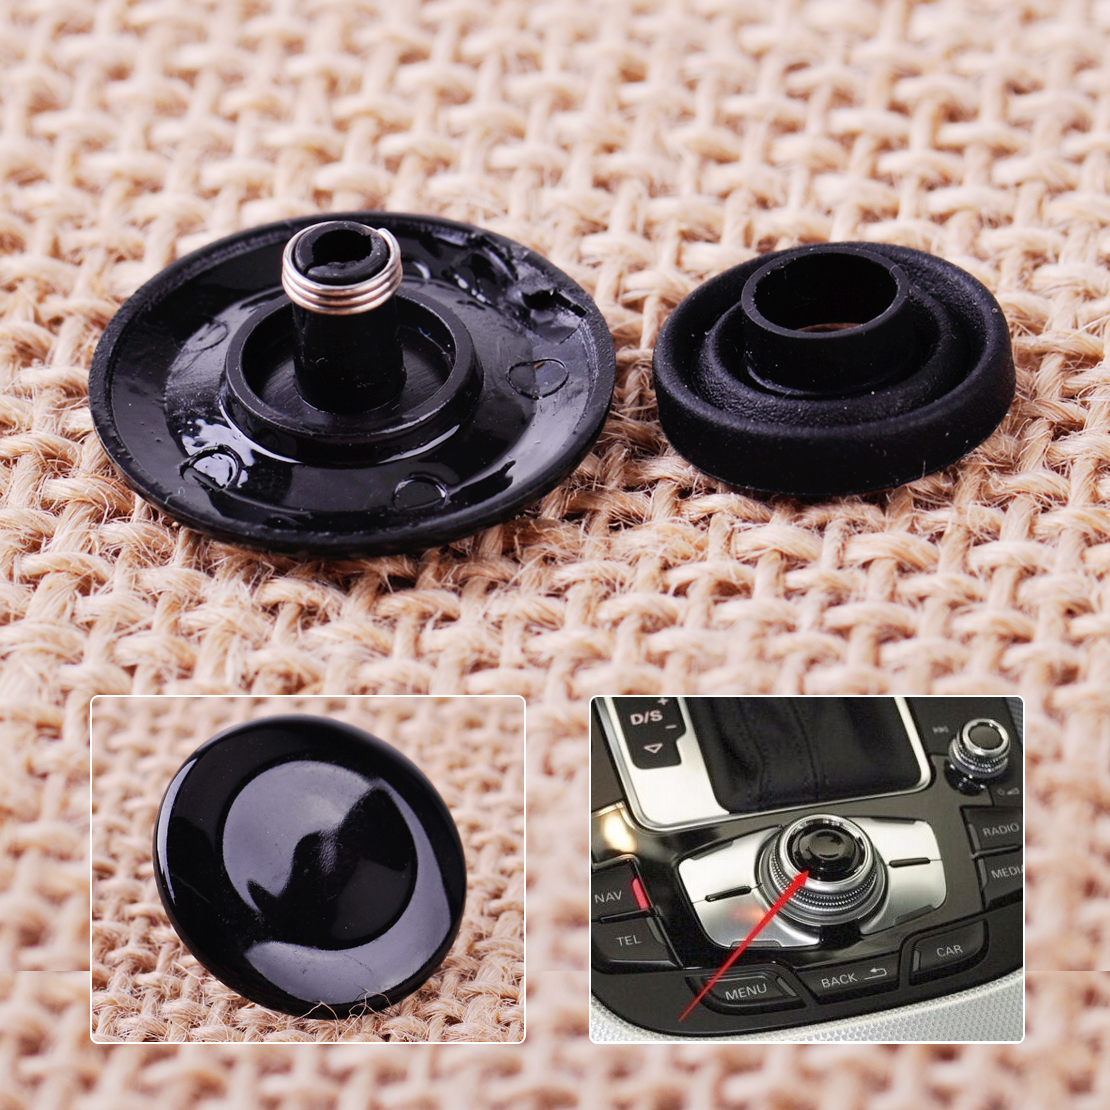 DWCX Car Bright Black MMI Knob Joystick Button Repair Kit 8K0998068A 8K0998068 for <font><b>Audi</b></font> A4 Q7 S4 A5 <font><b>A6</b></font> Q5 S6 image